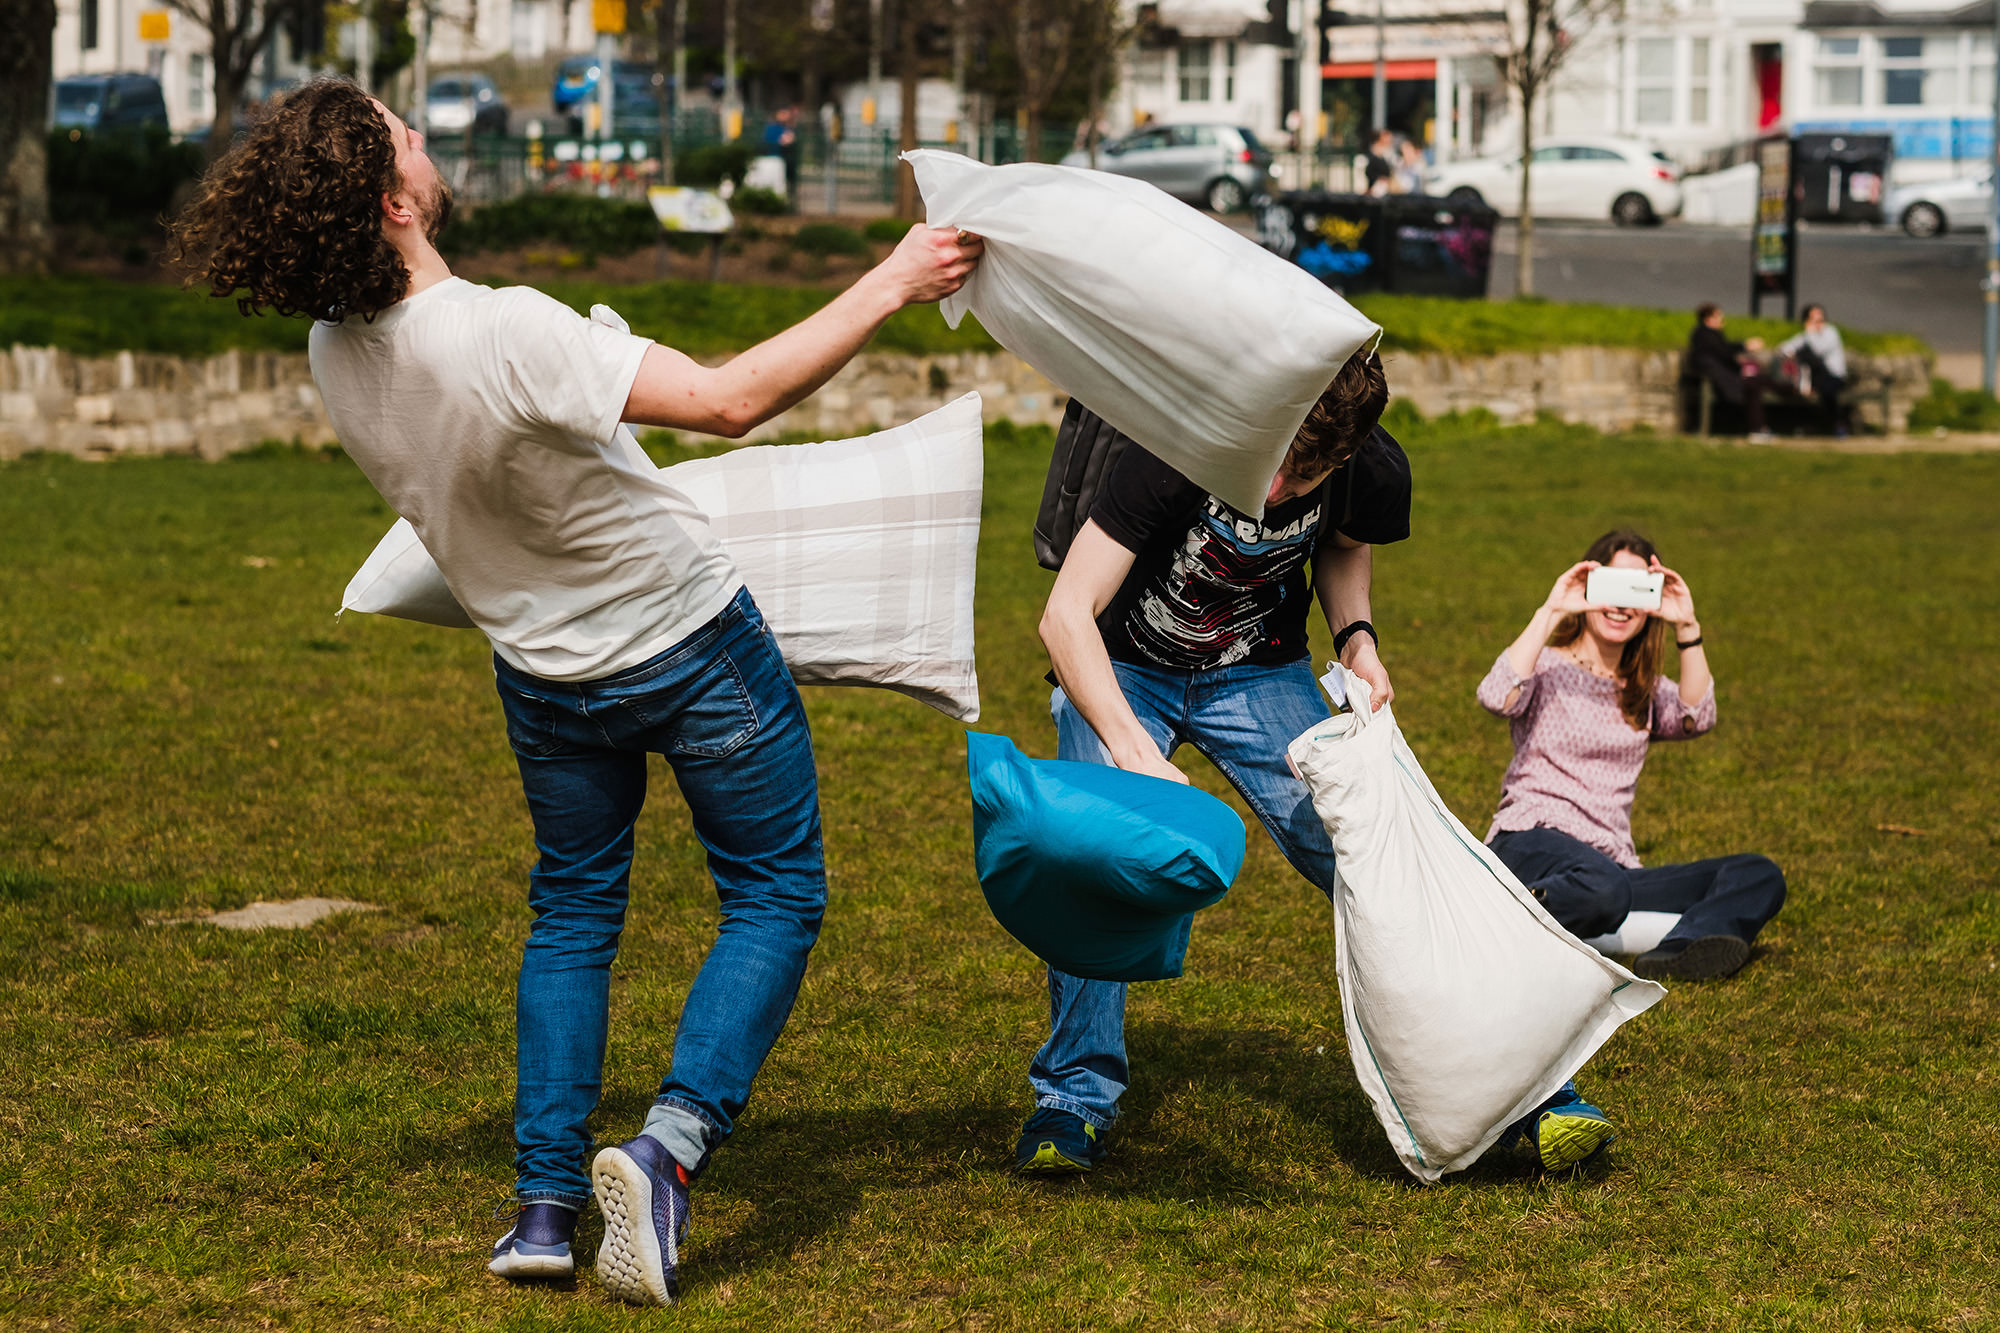 Documentary photography Brighton pillow fight